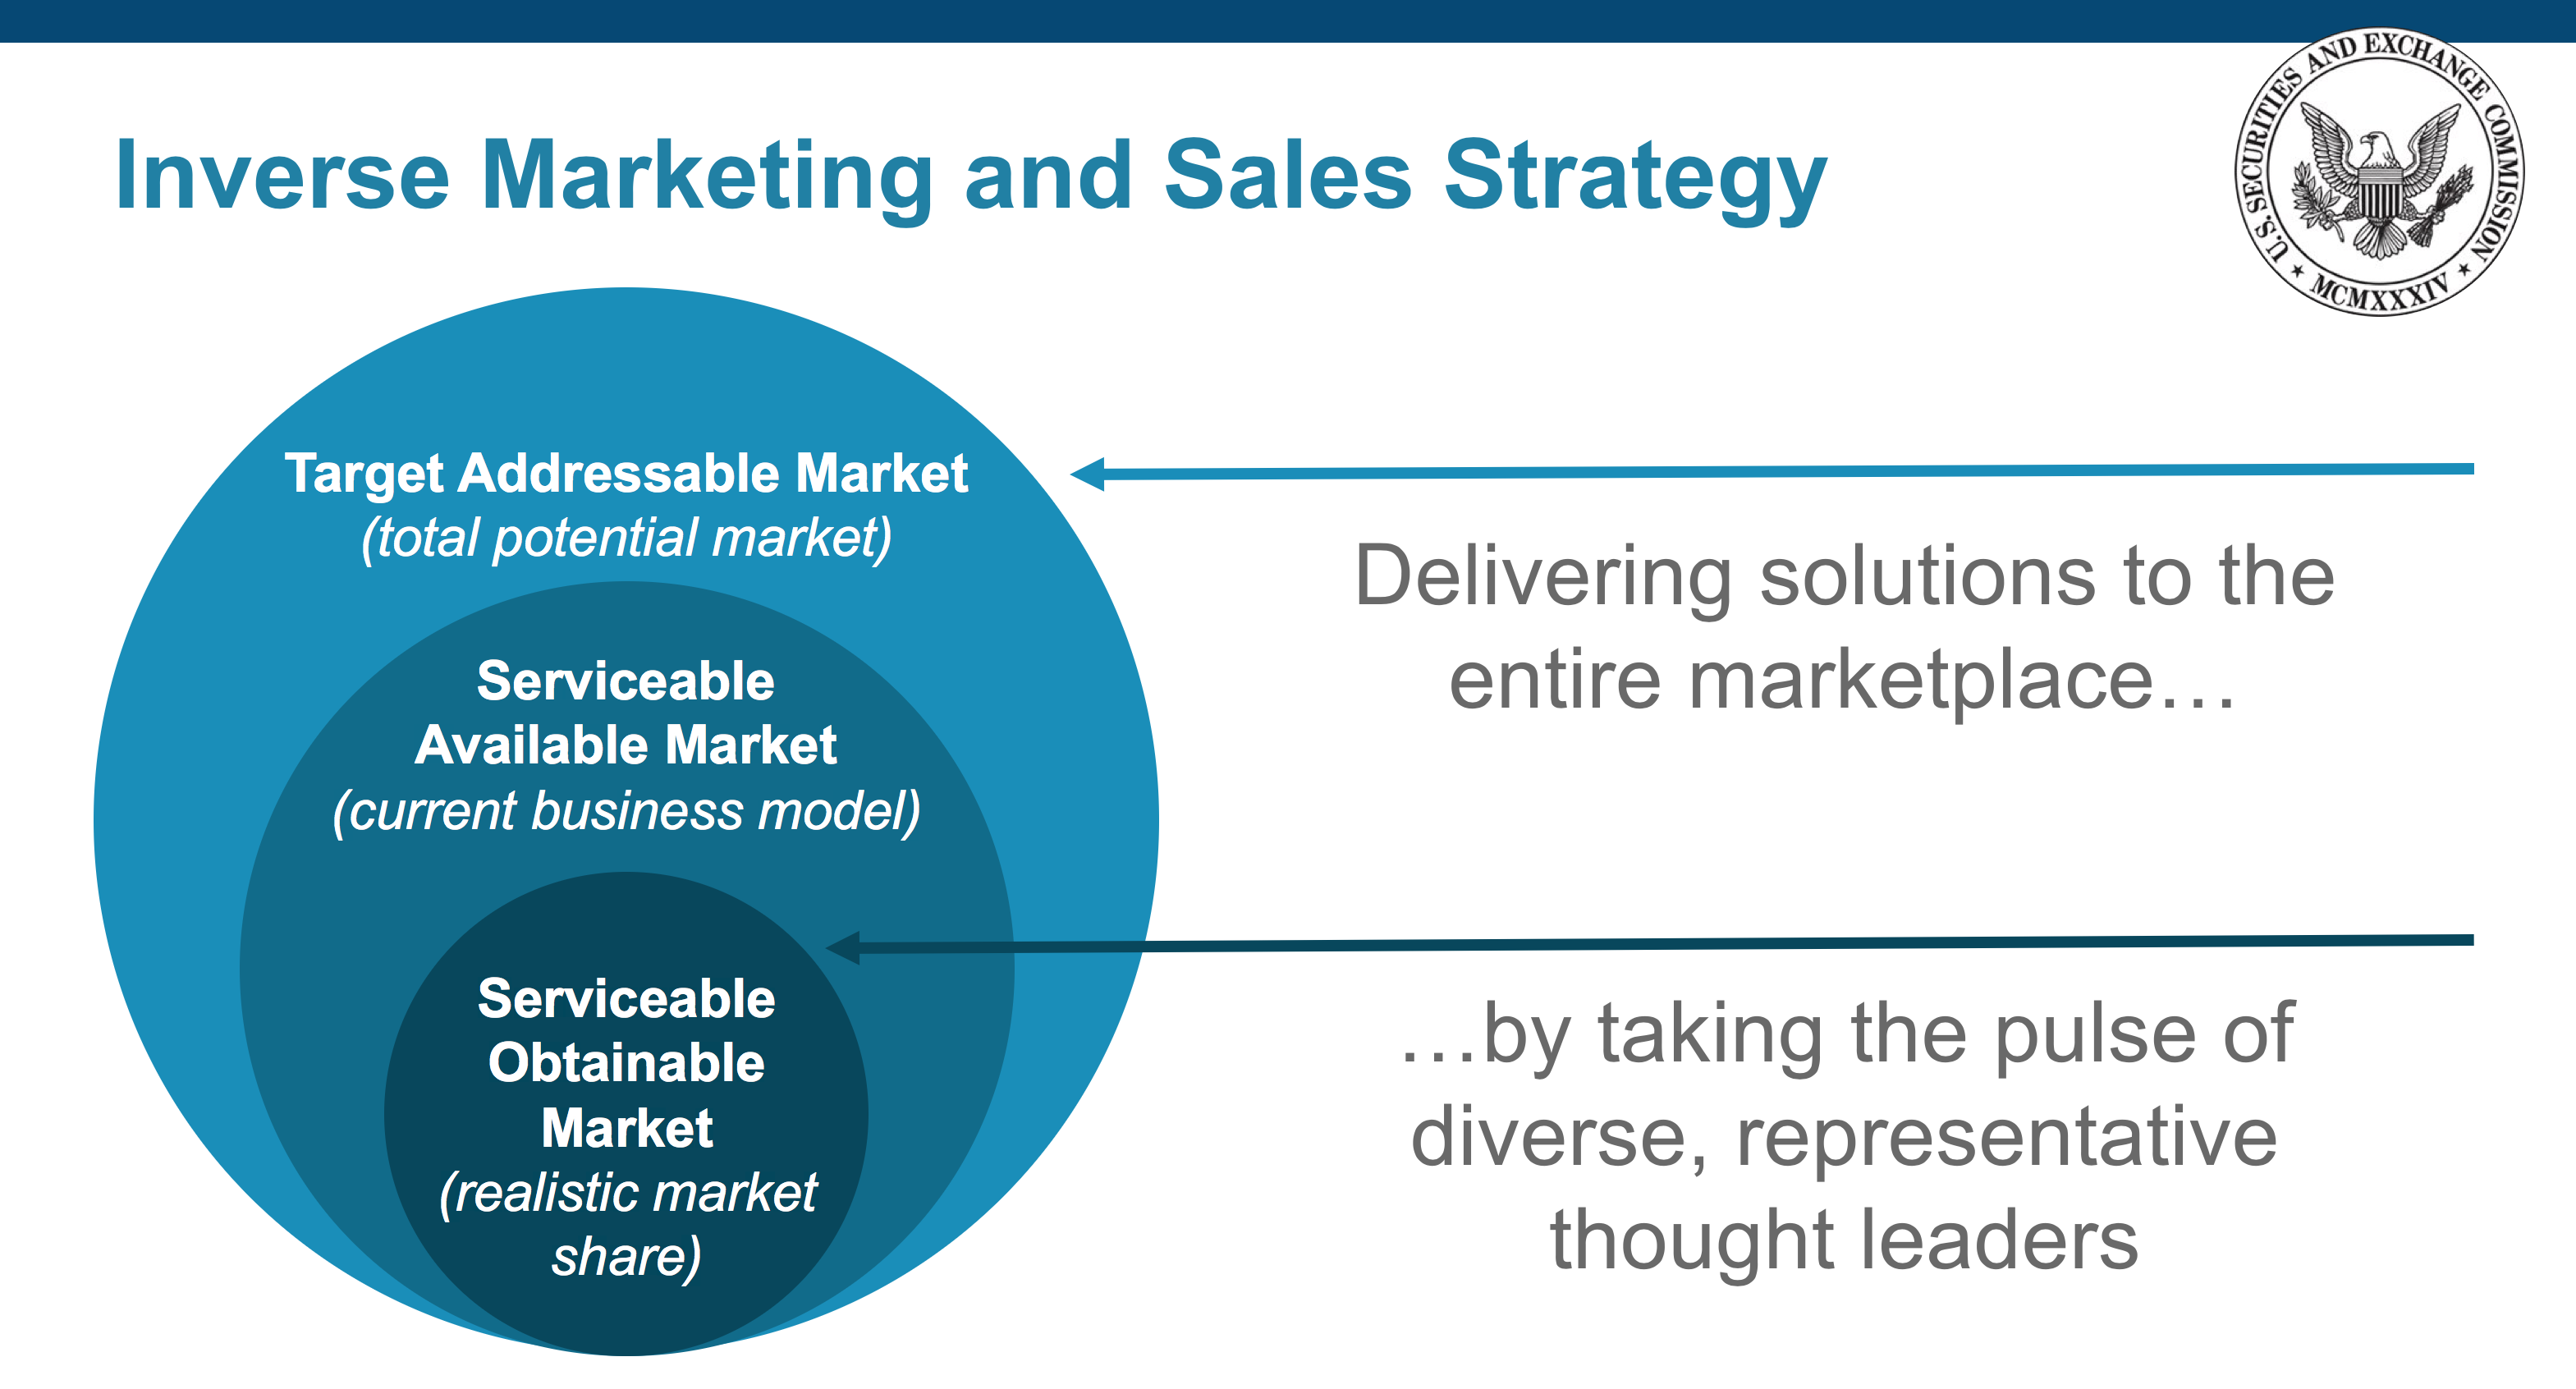 Inverse Marketing and Sales Strategy slide